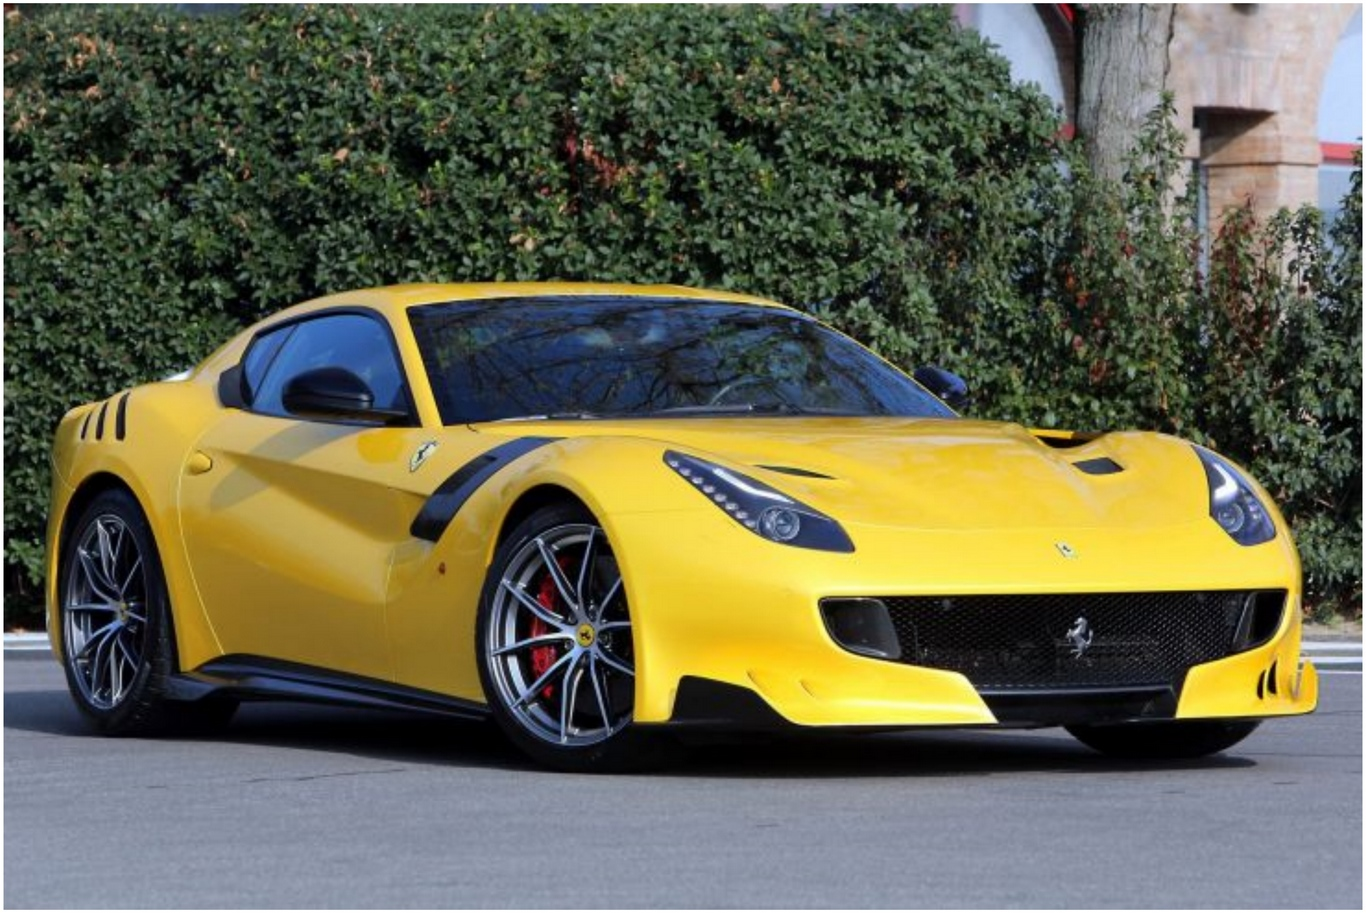 Best 2016 Ferrari F12tdf hd Car Picture Download